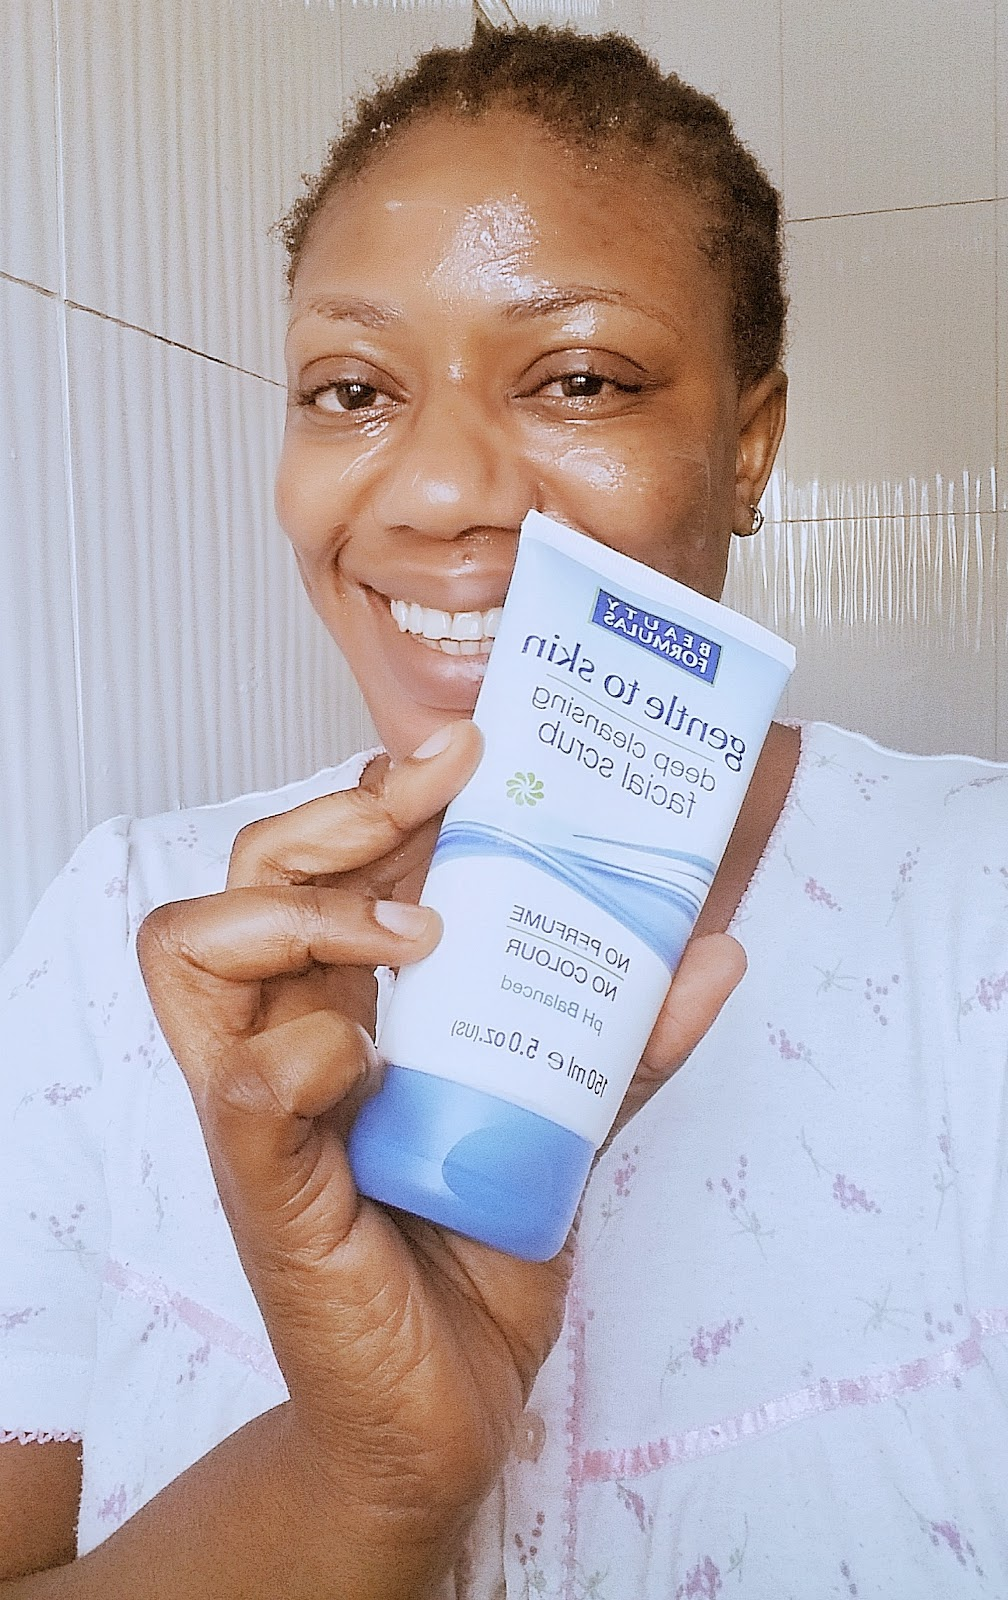 http://www.winniesstyle.com/2019/09/face-care-with-beauty-formulas.html